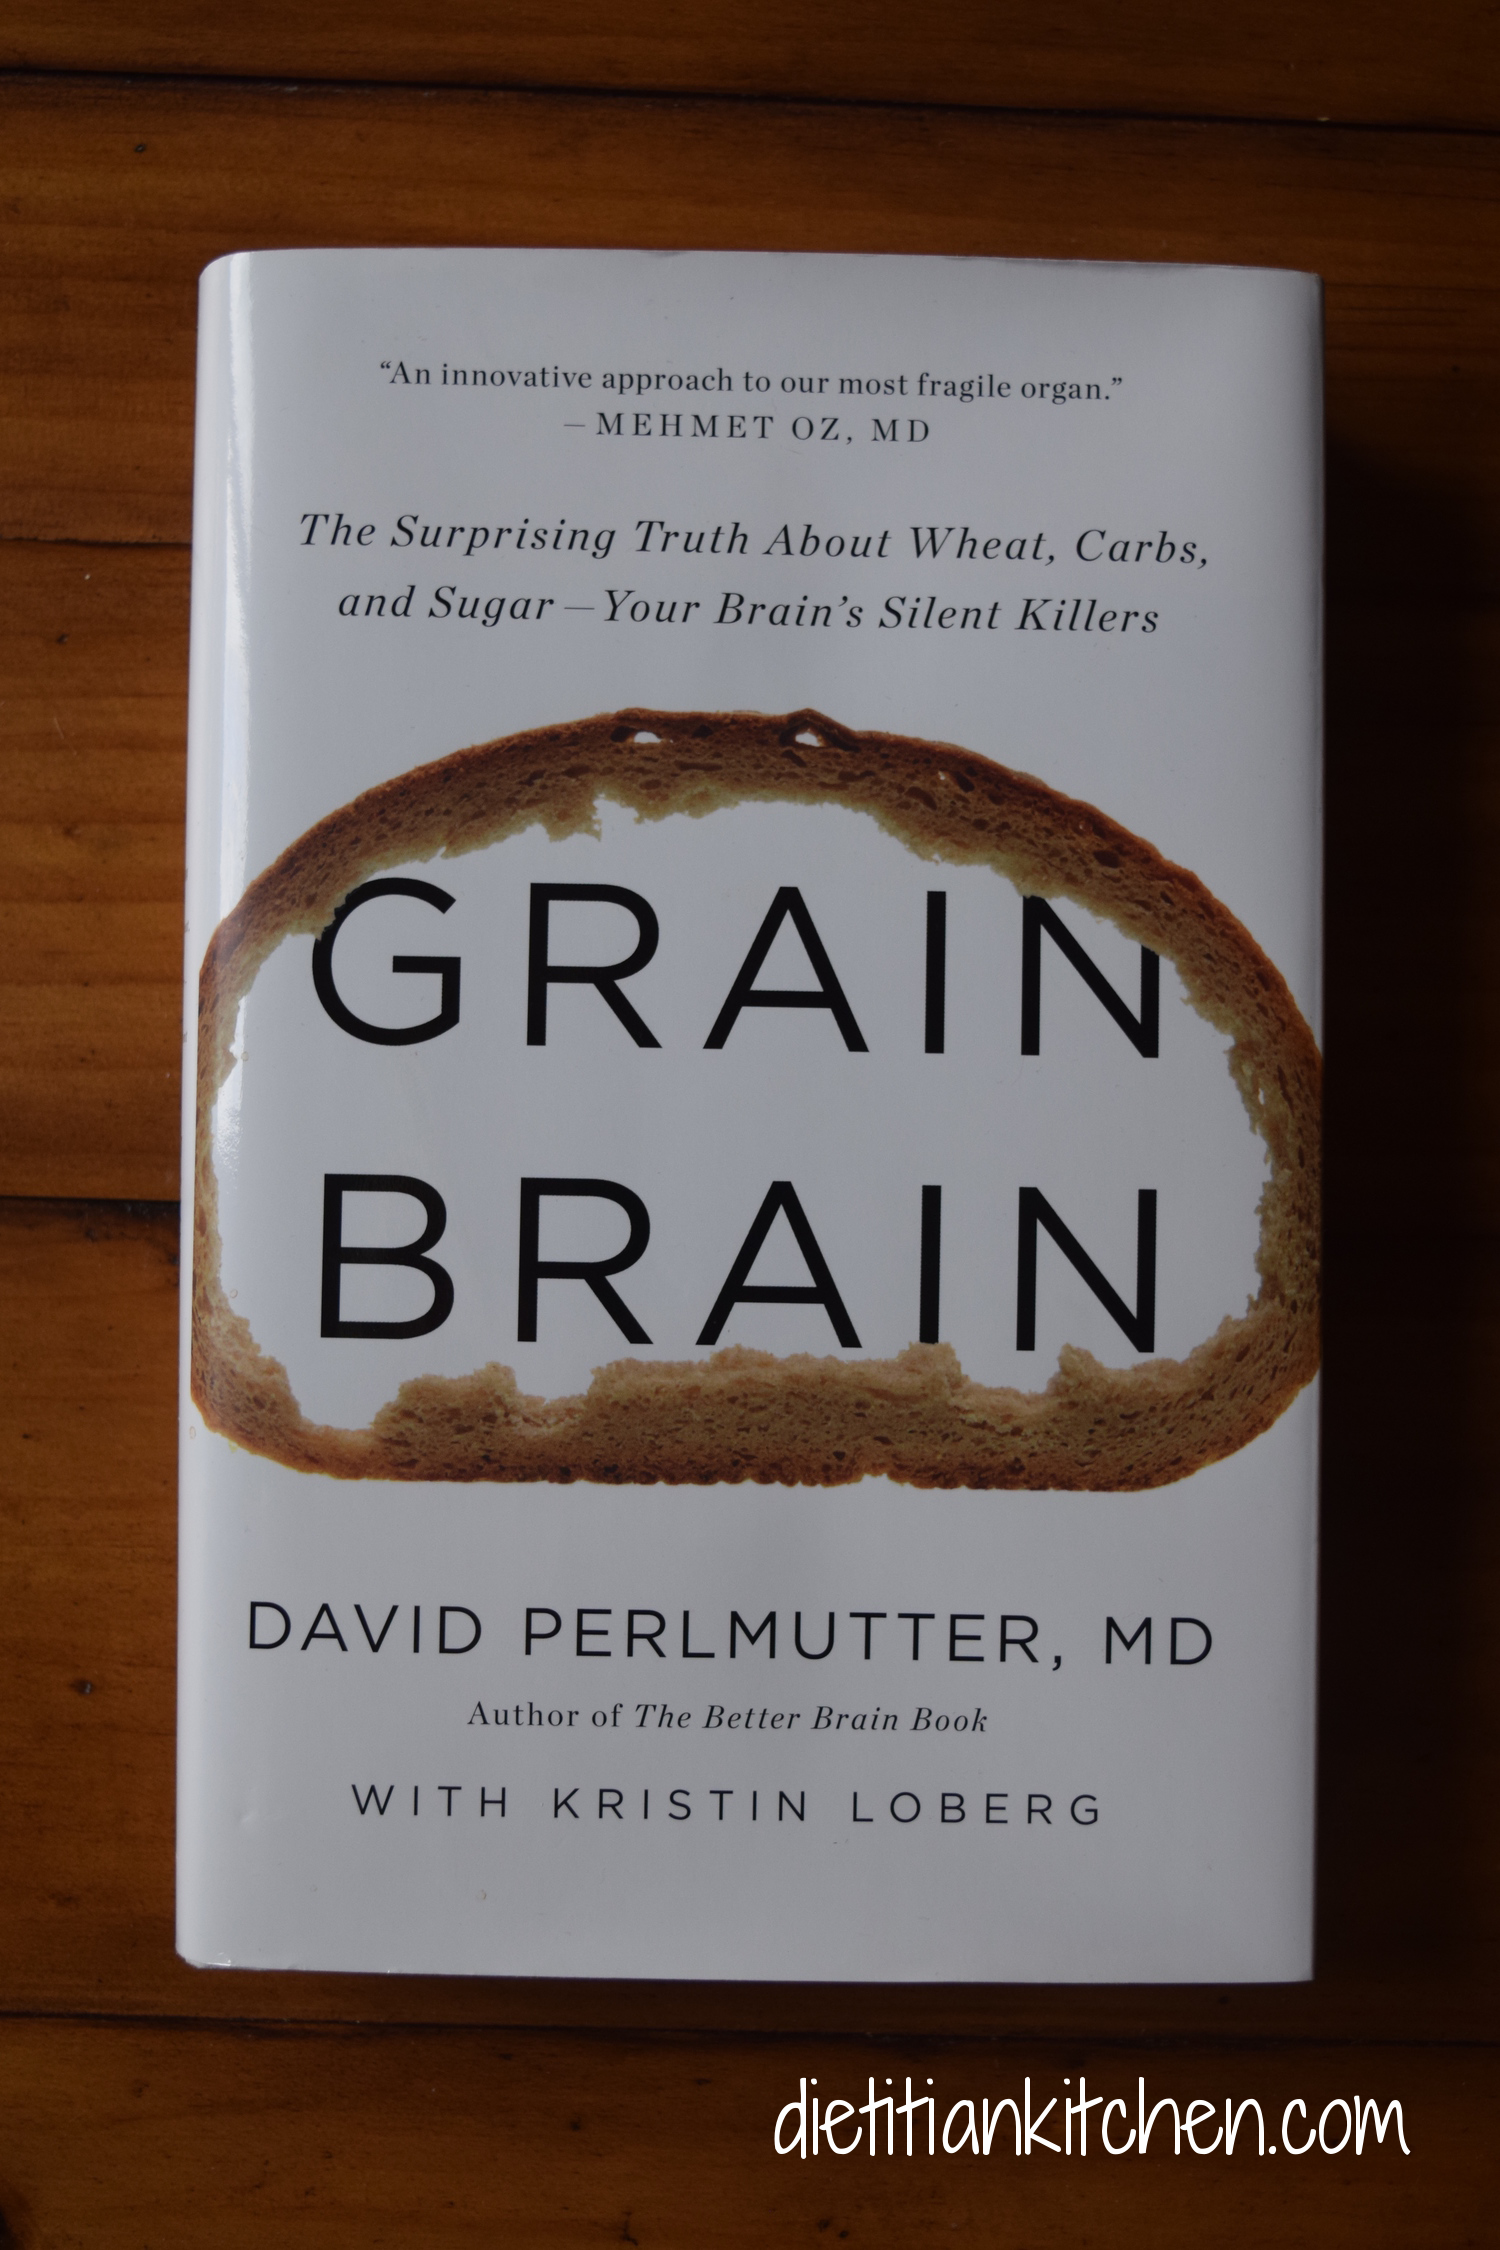 David Perlmutter explains why you may have an intolerance to grains and just don't know it. Unfortunately, the grains we are eating now are a far cry from the grains our ancestor ate.